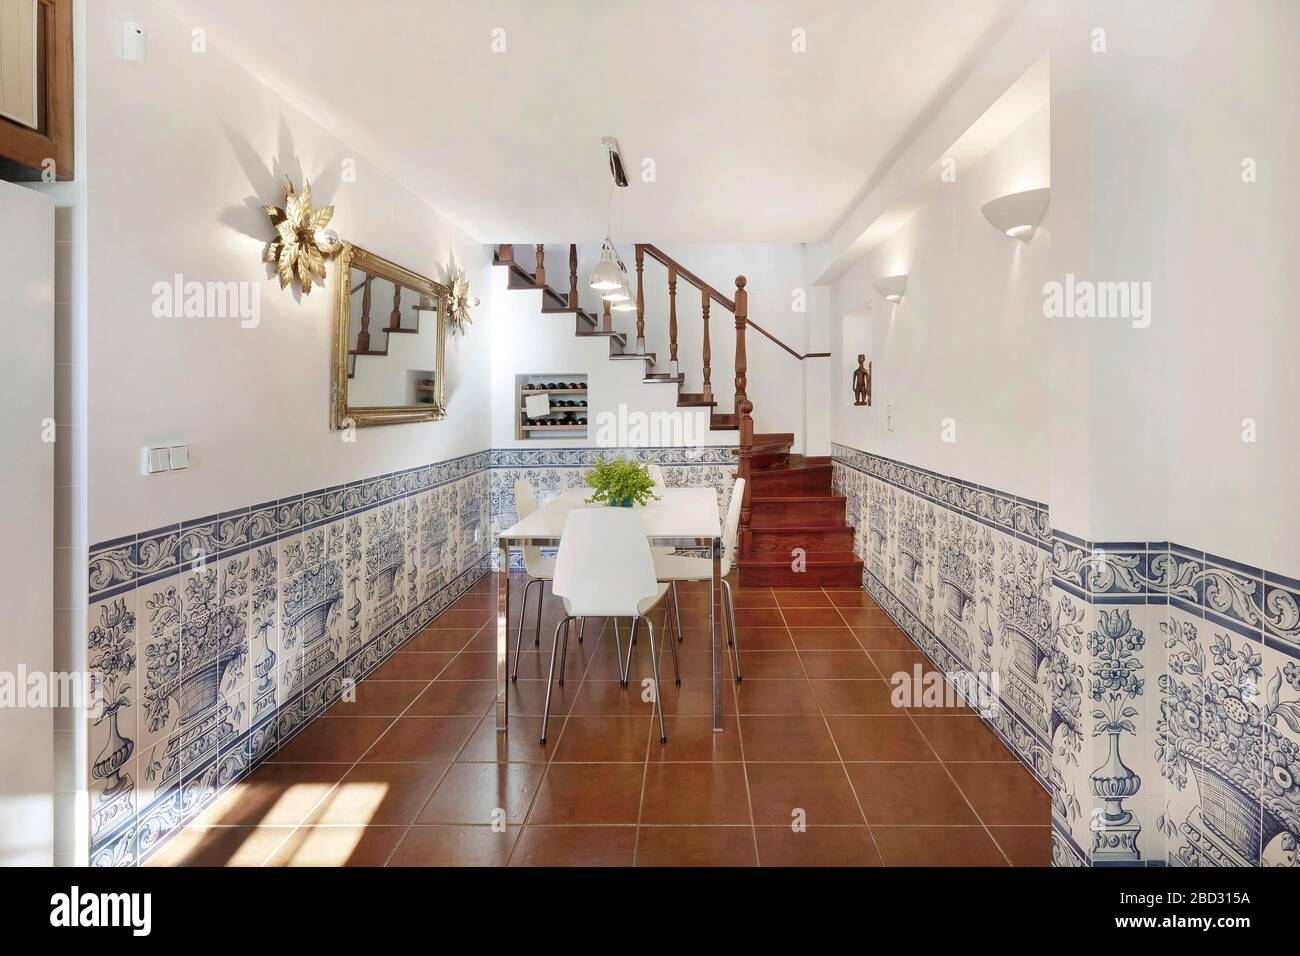 Home Interior Modern Contemporary Furniture Room Access Wooden | Floor Tiles Design For Stairs | Hallway Floor Tile | Stair Landing | House | Stair Riser | Wall